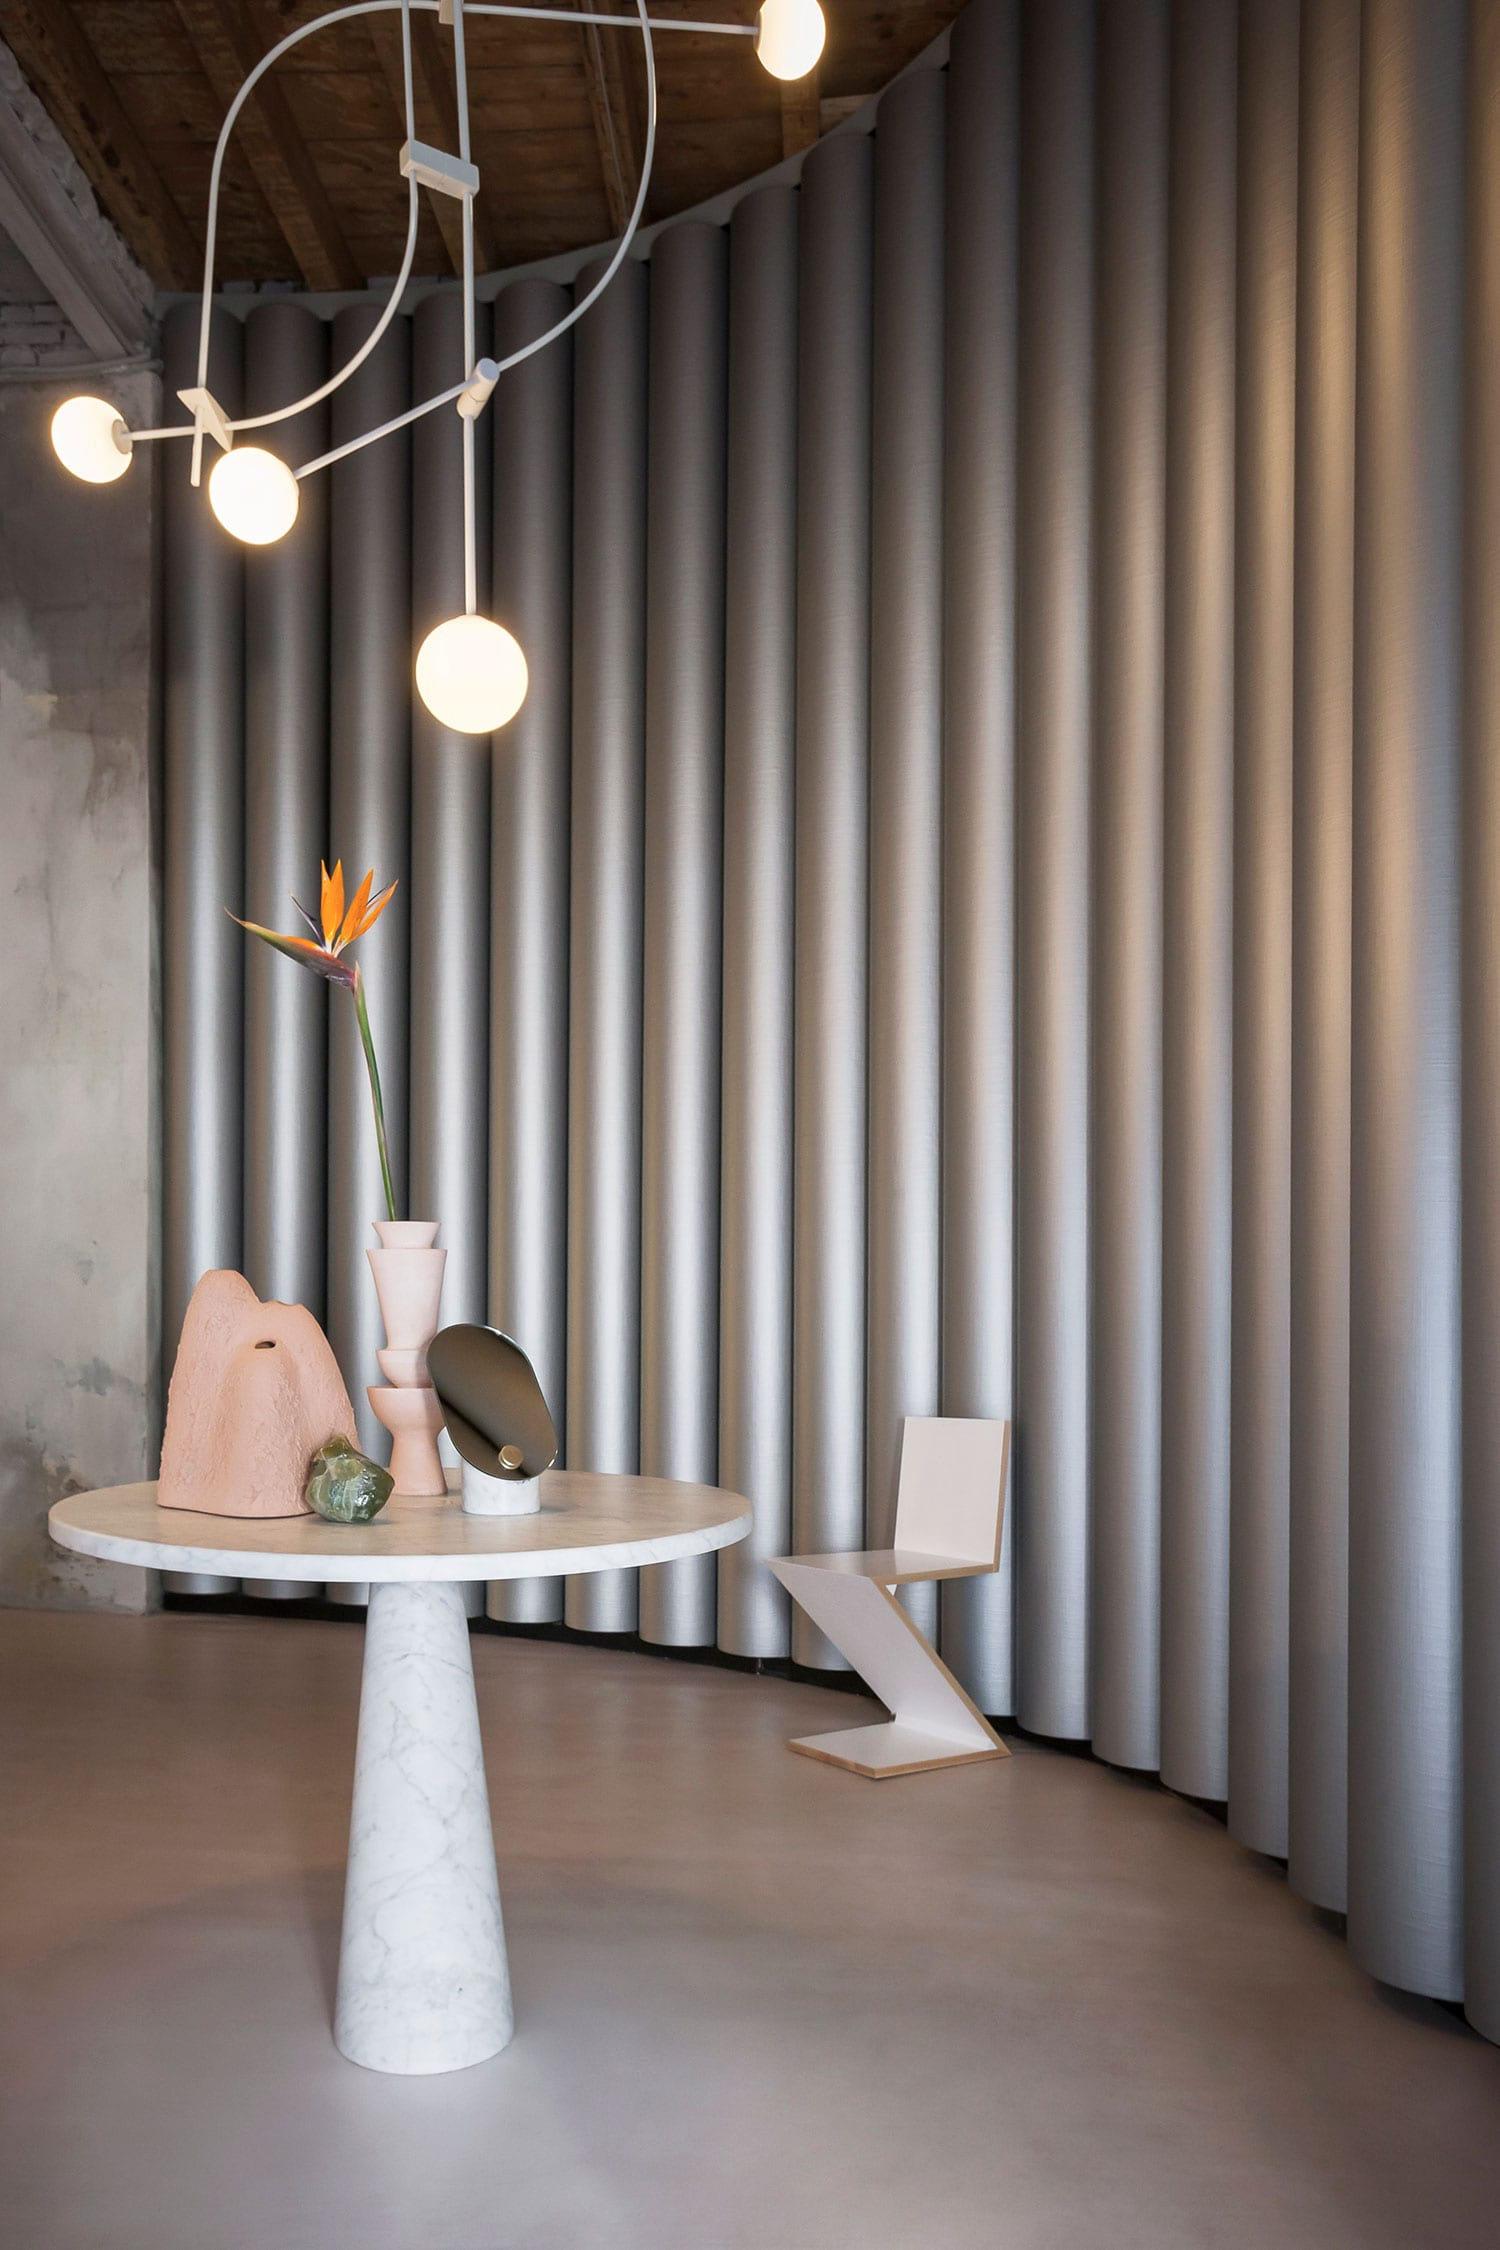 Club Unseen by Studiopepe at Milan Design Week 2018 | #Milantrace2018